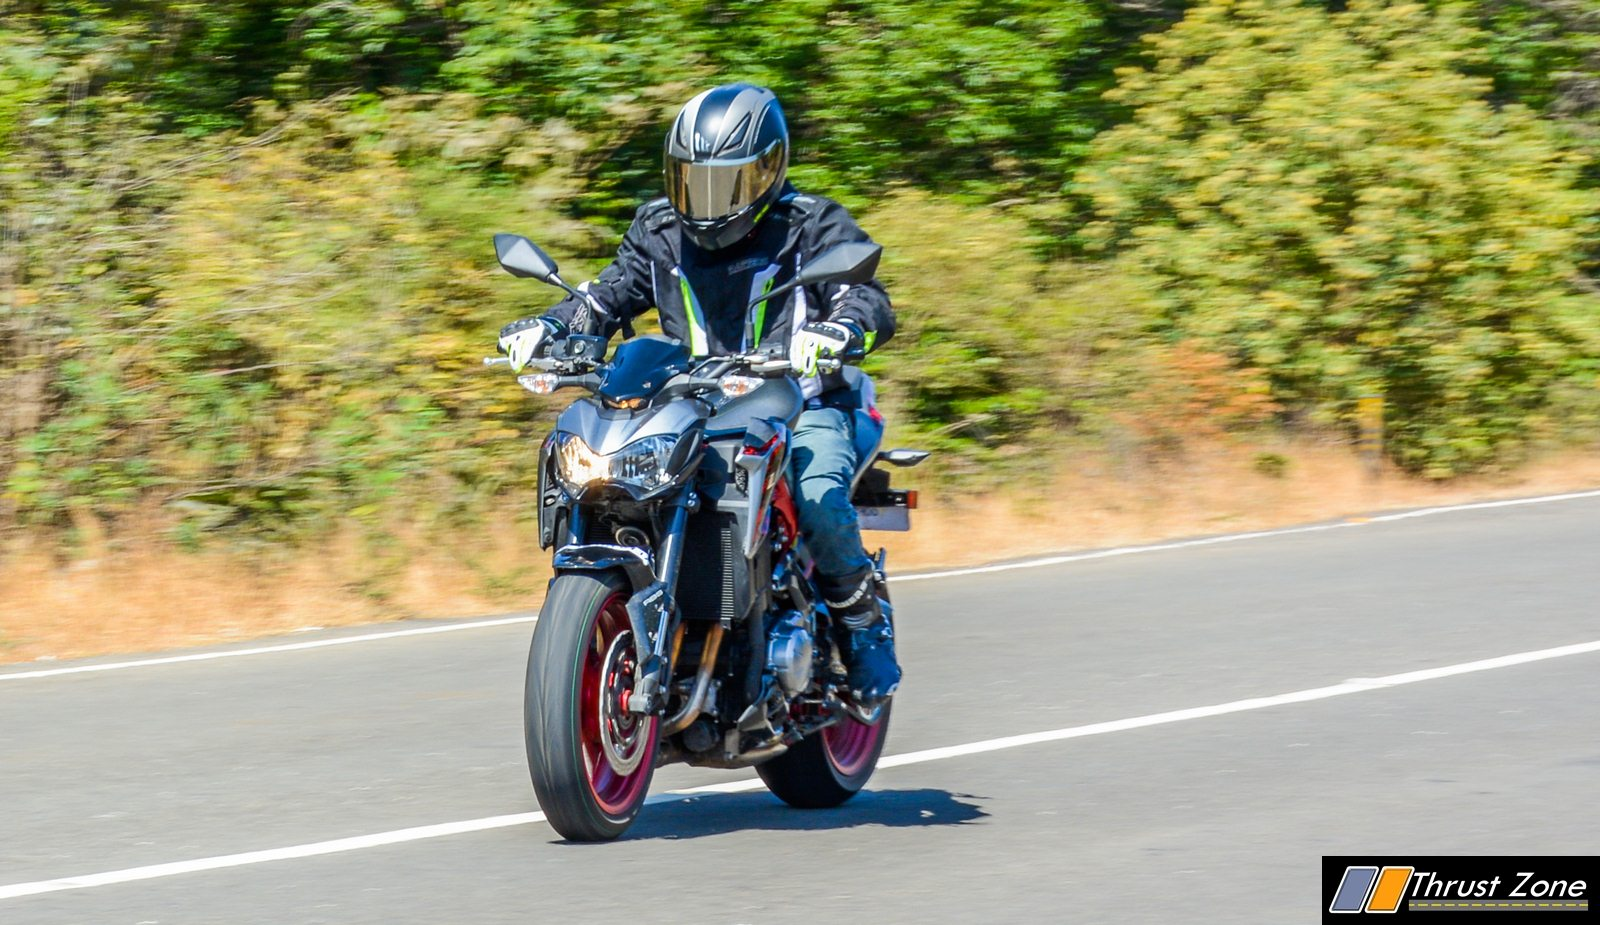 2019-Kawasaki-Z900-India-Review-23